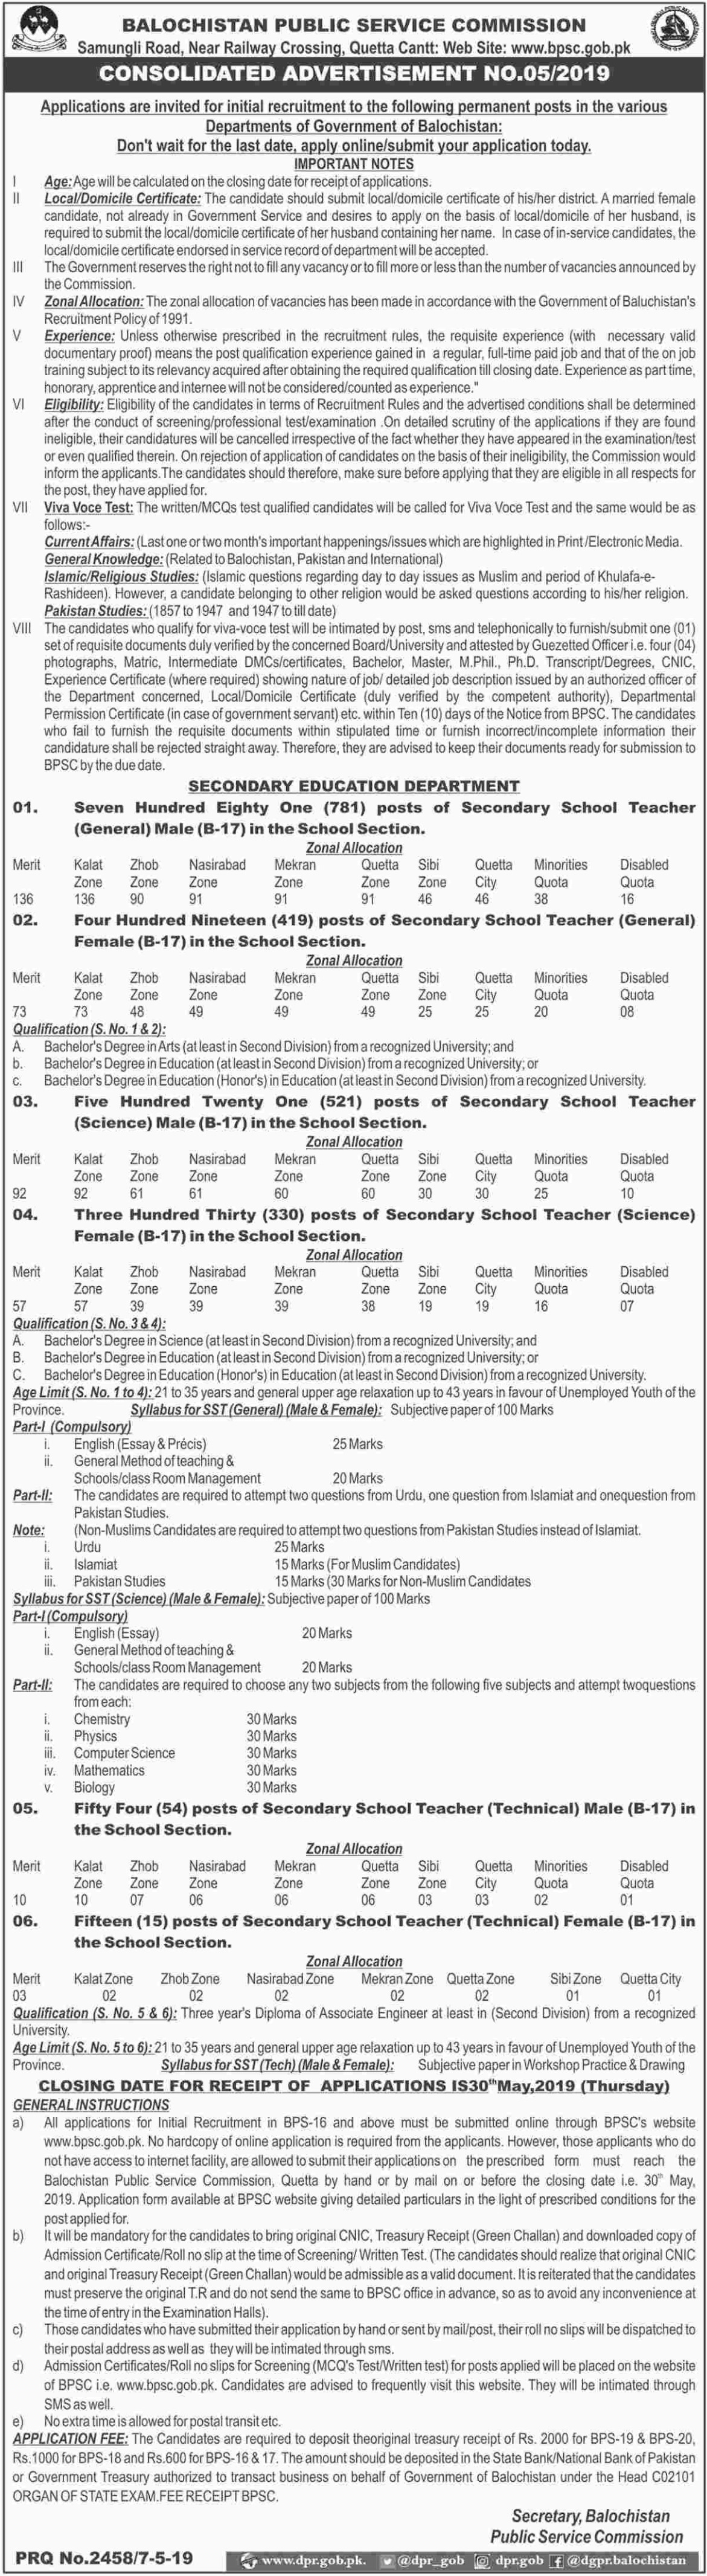 Balochistan Public Service Commission BPSC Jobs 2019 Latest Advertisement